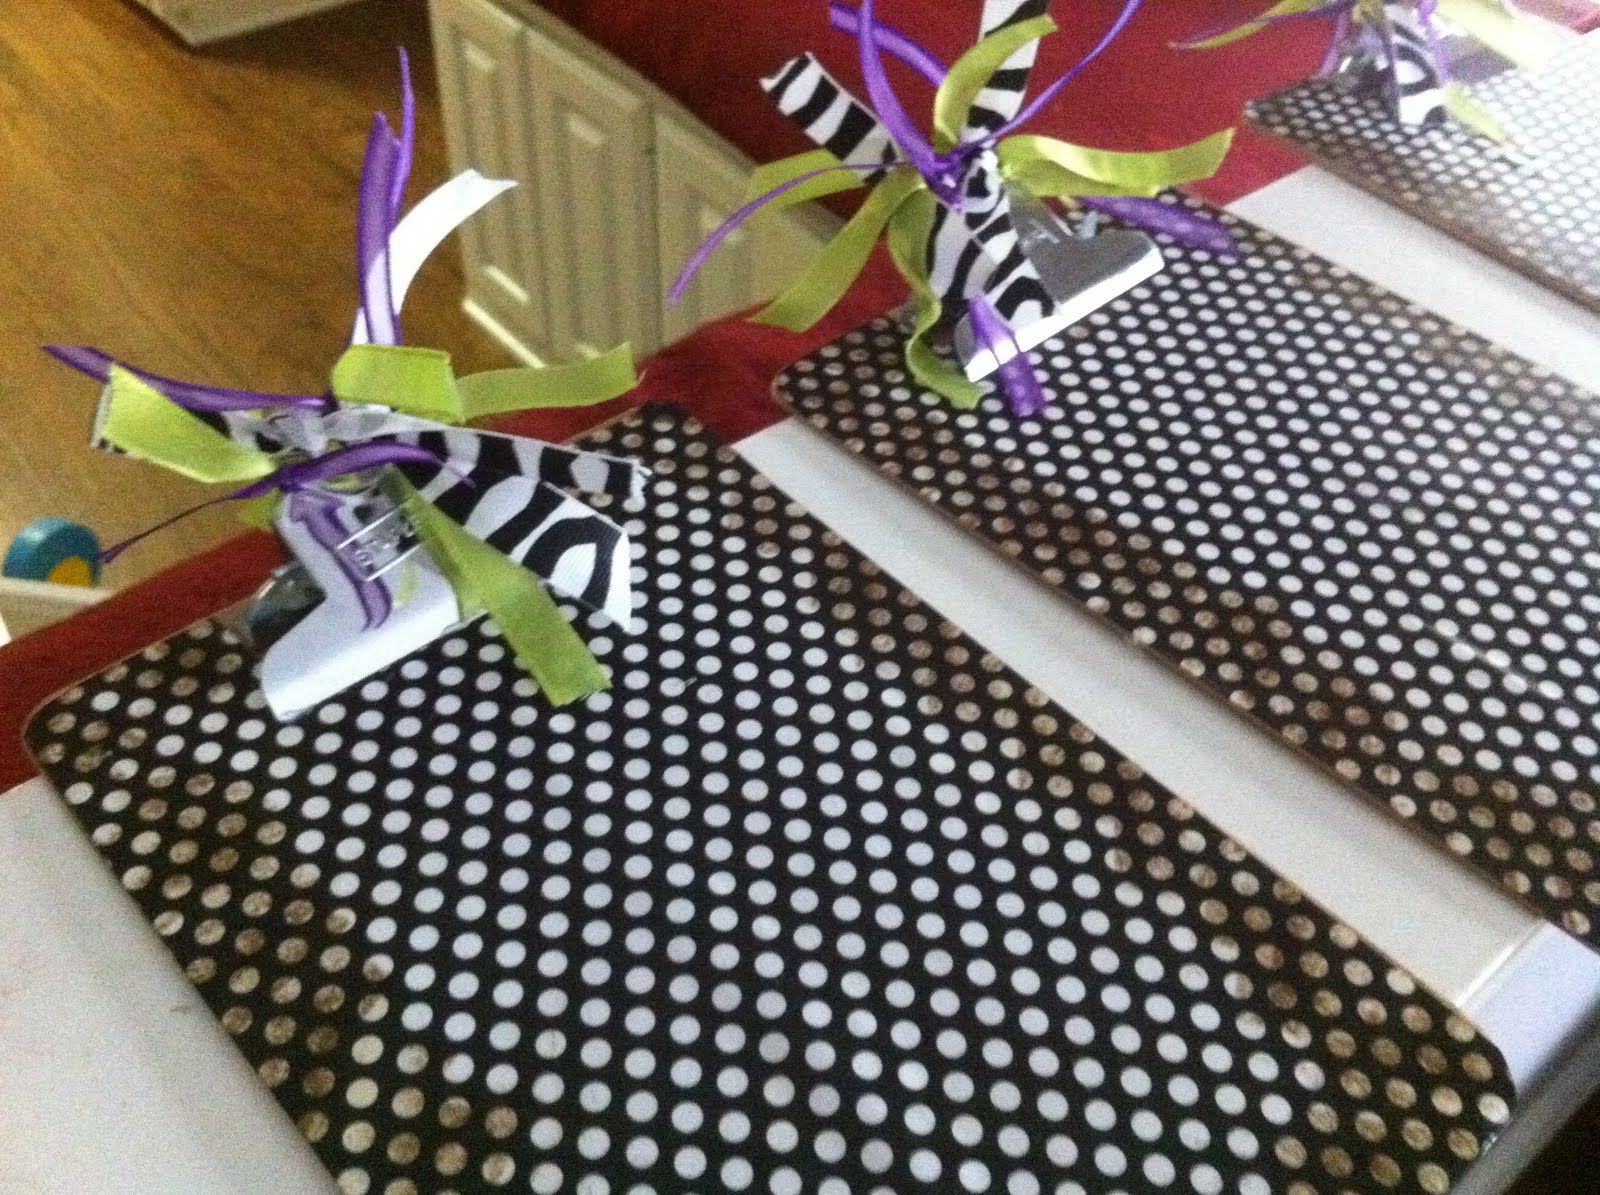 scentsy party ideas   Some clipboards I decorated for my Scentsy parties! I love…